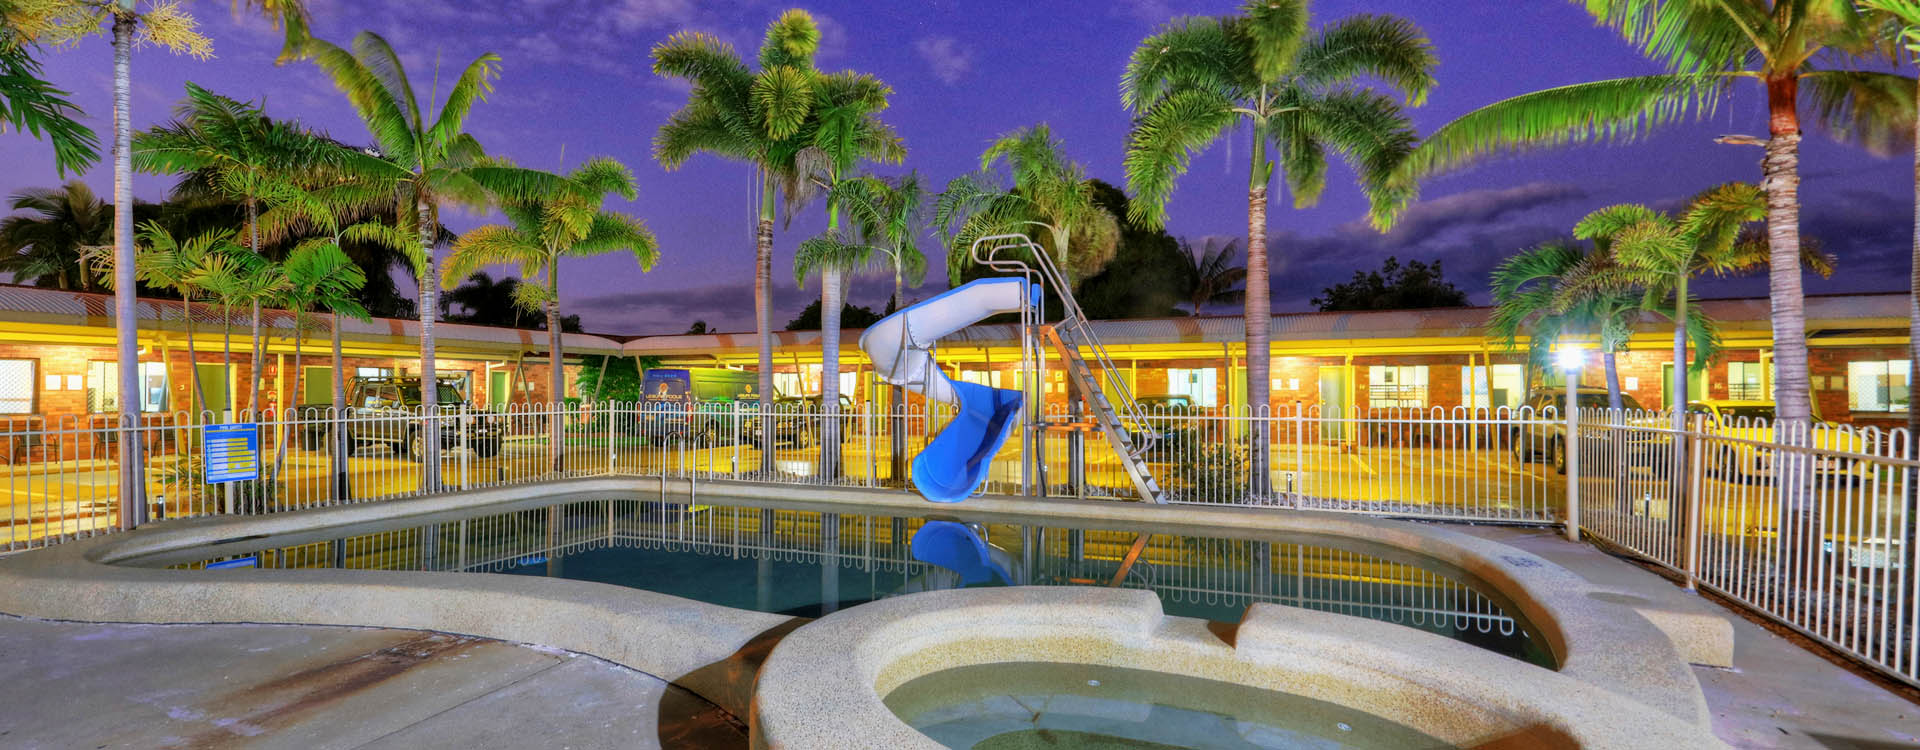 Billabong Lodge Motel is your home away from home.